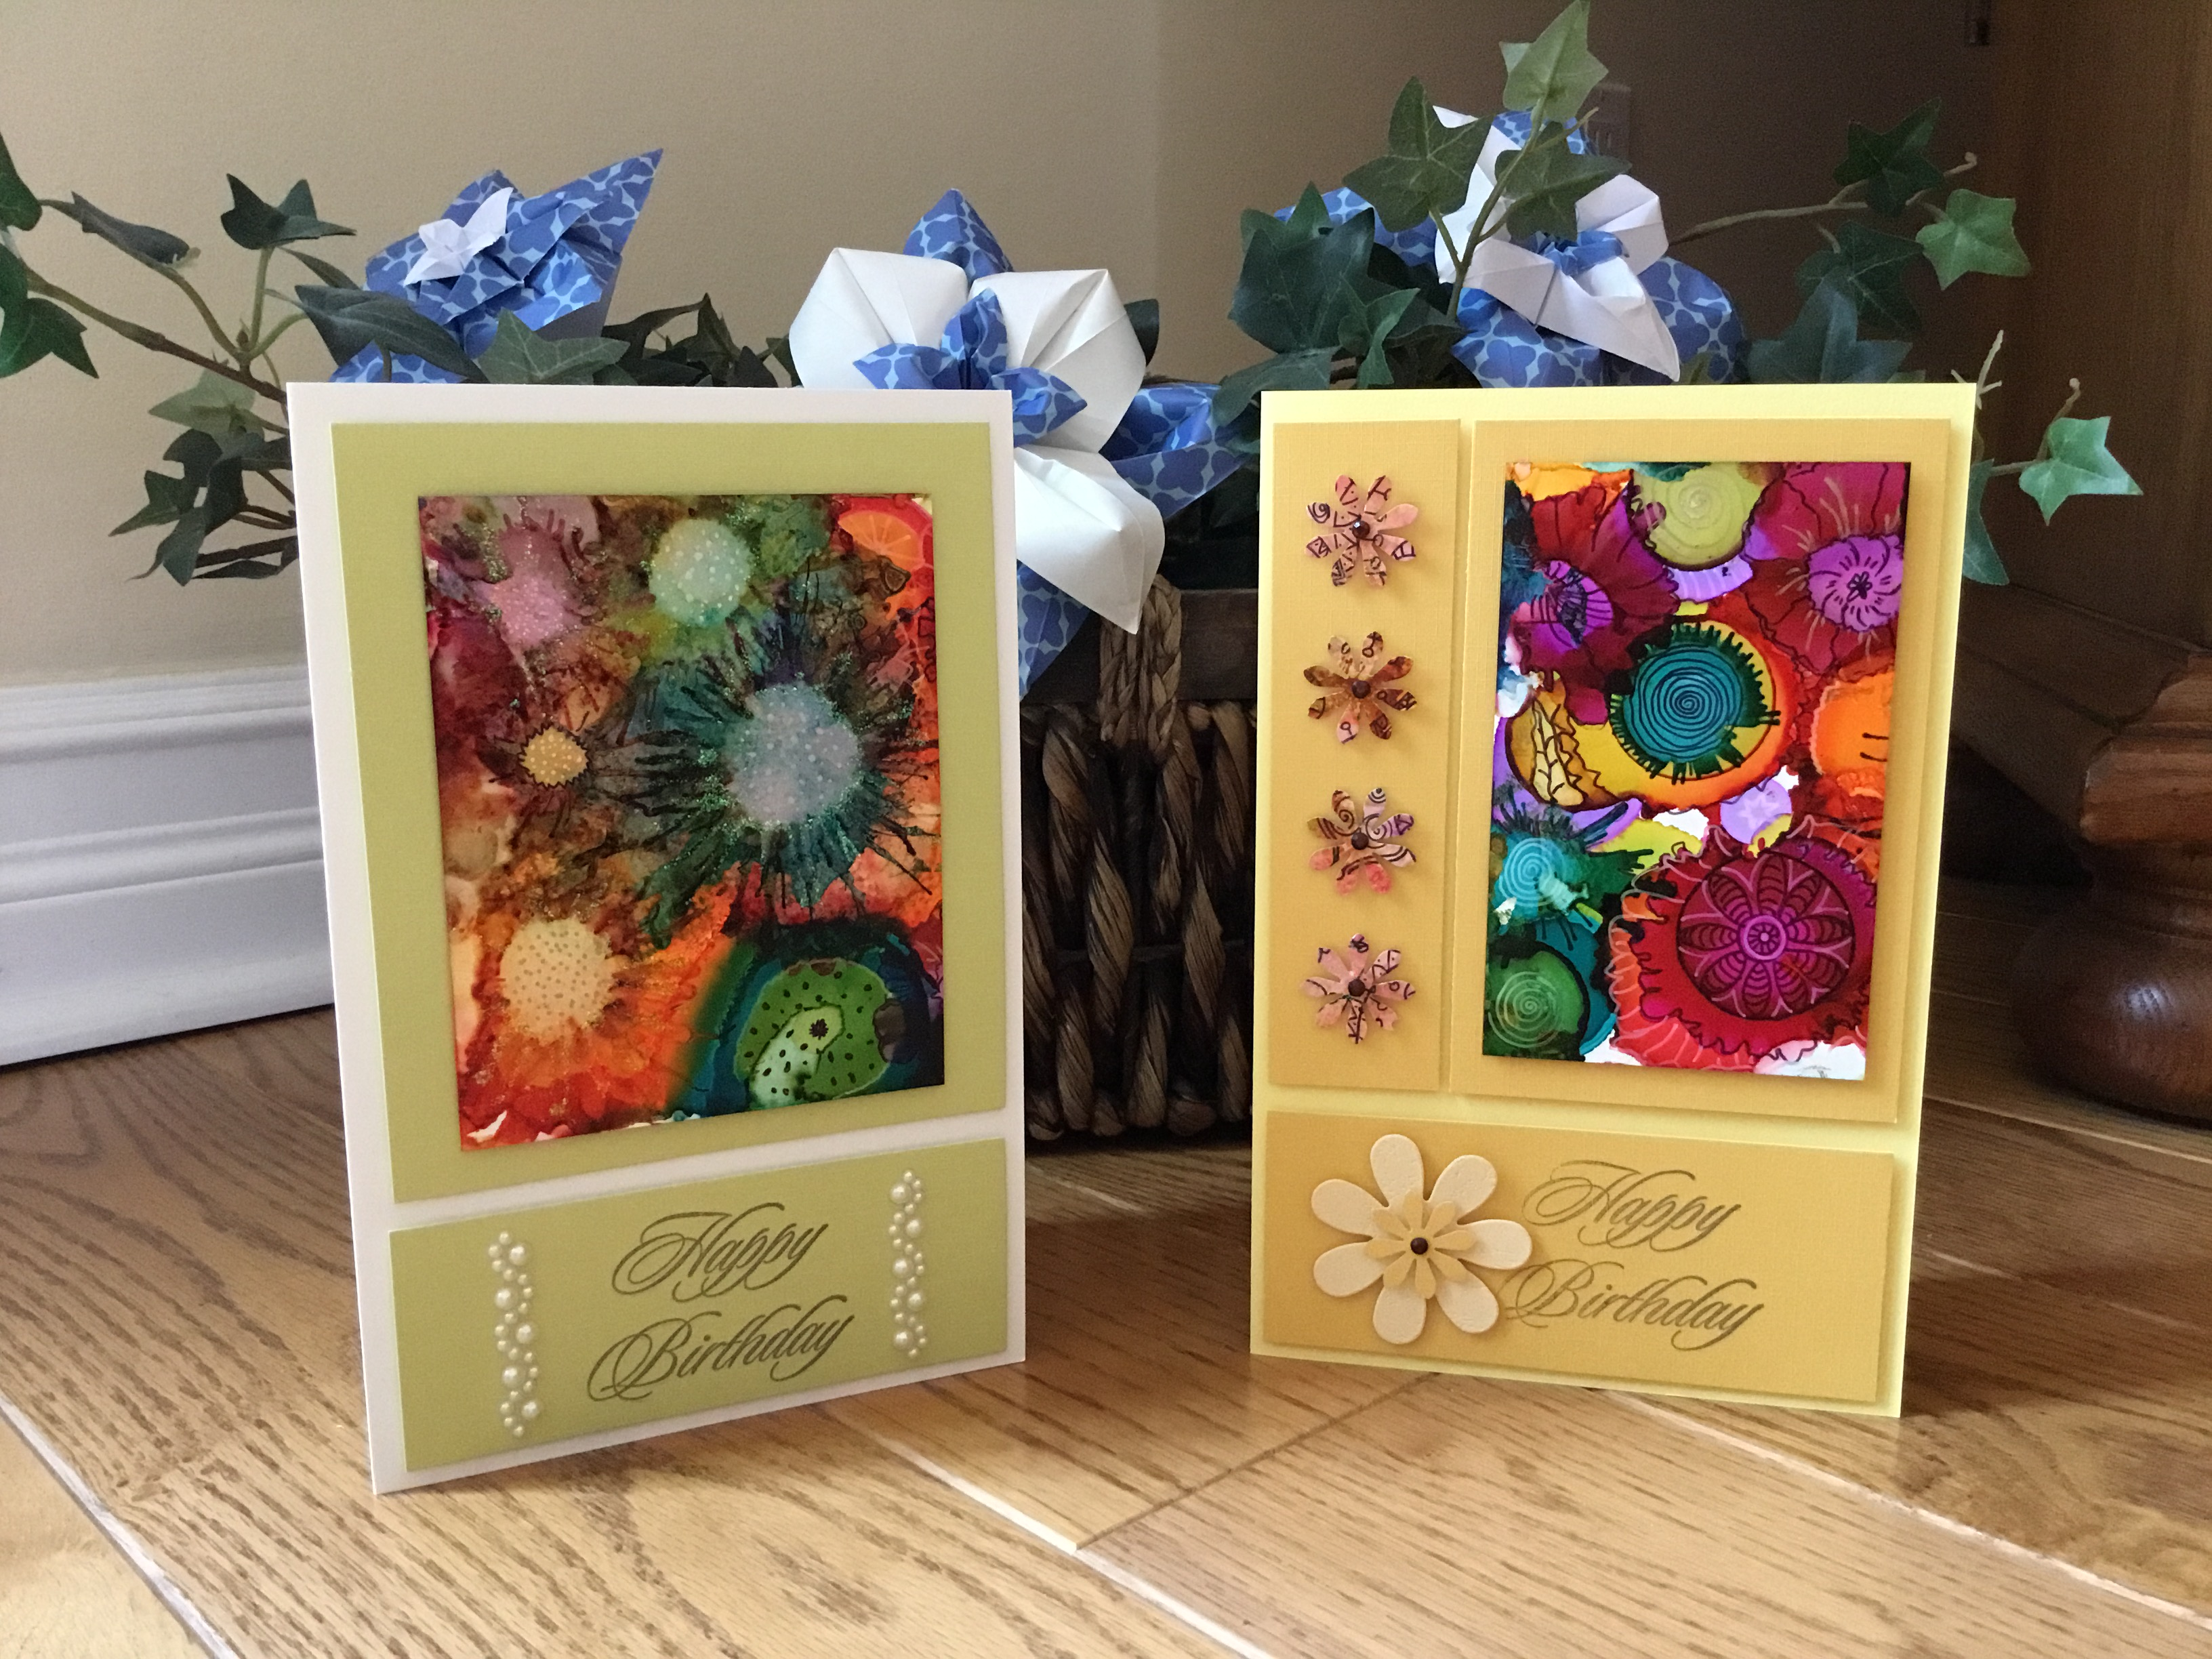 Alcohol Inks and Zentangle Art